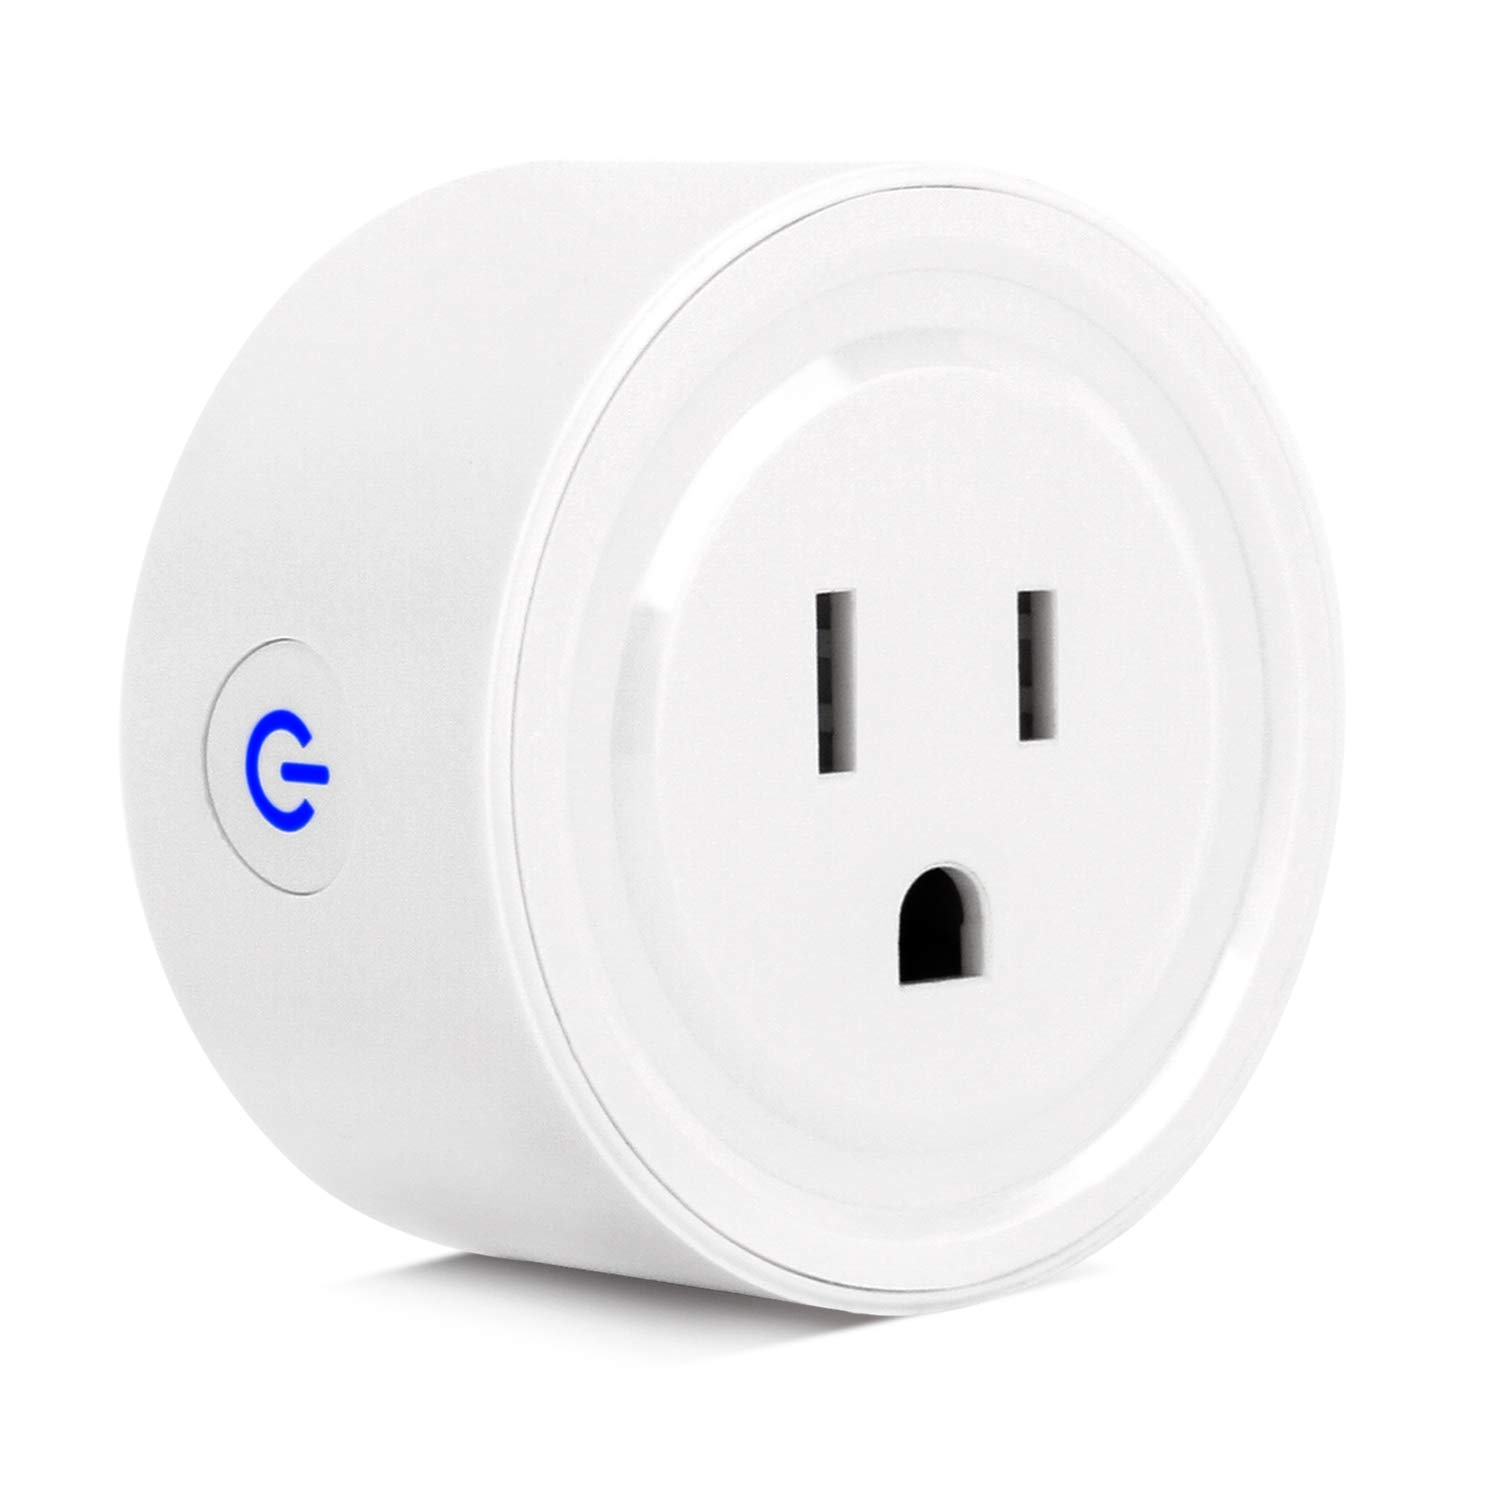 WIFI Smart Plug,ZTHY Wireless Timing Function MINI Socket Outlet Compatible with Amazon Alexa Echo, Google home and IFTTT for Voice Control, No Hub Required,Remote Control your Devices from Anywhere